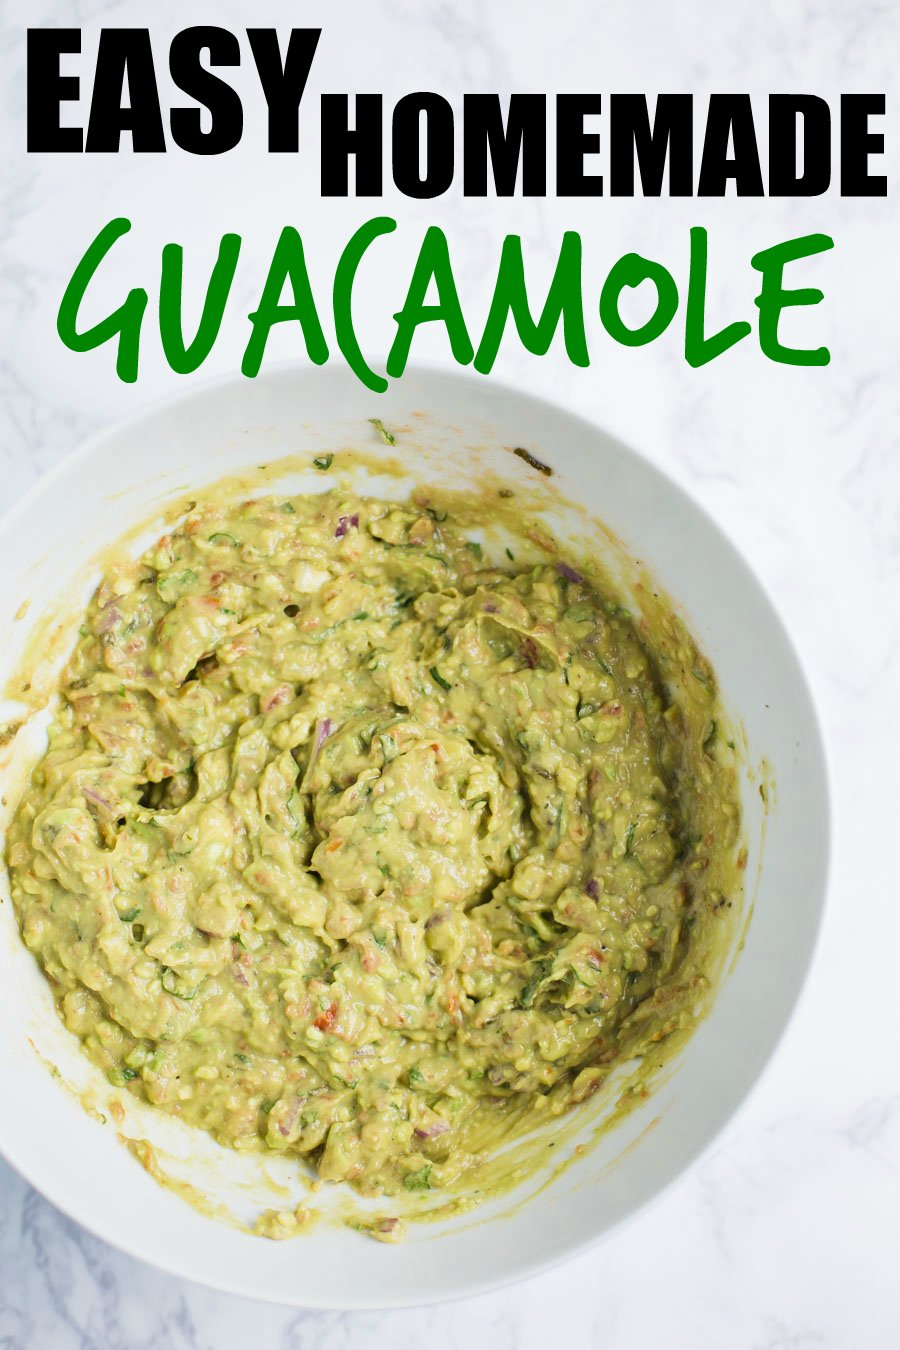 Easy Homemade Guacamole- this guacamole is completely vegan, super easy to make, and packed with whole foods. Perfect for parties or taco night!